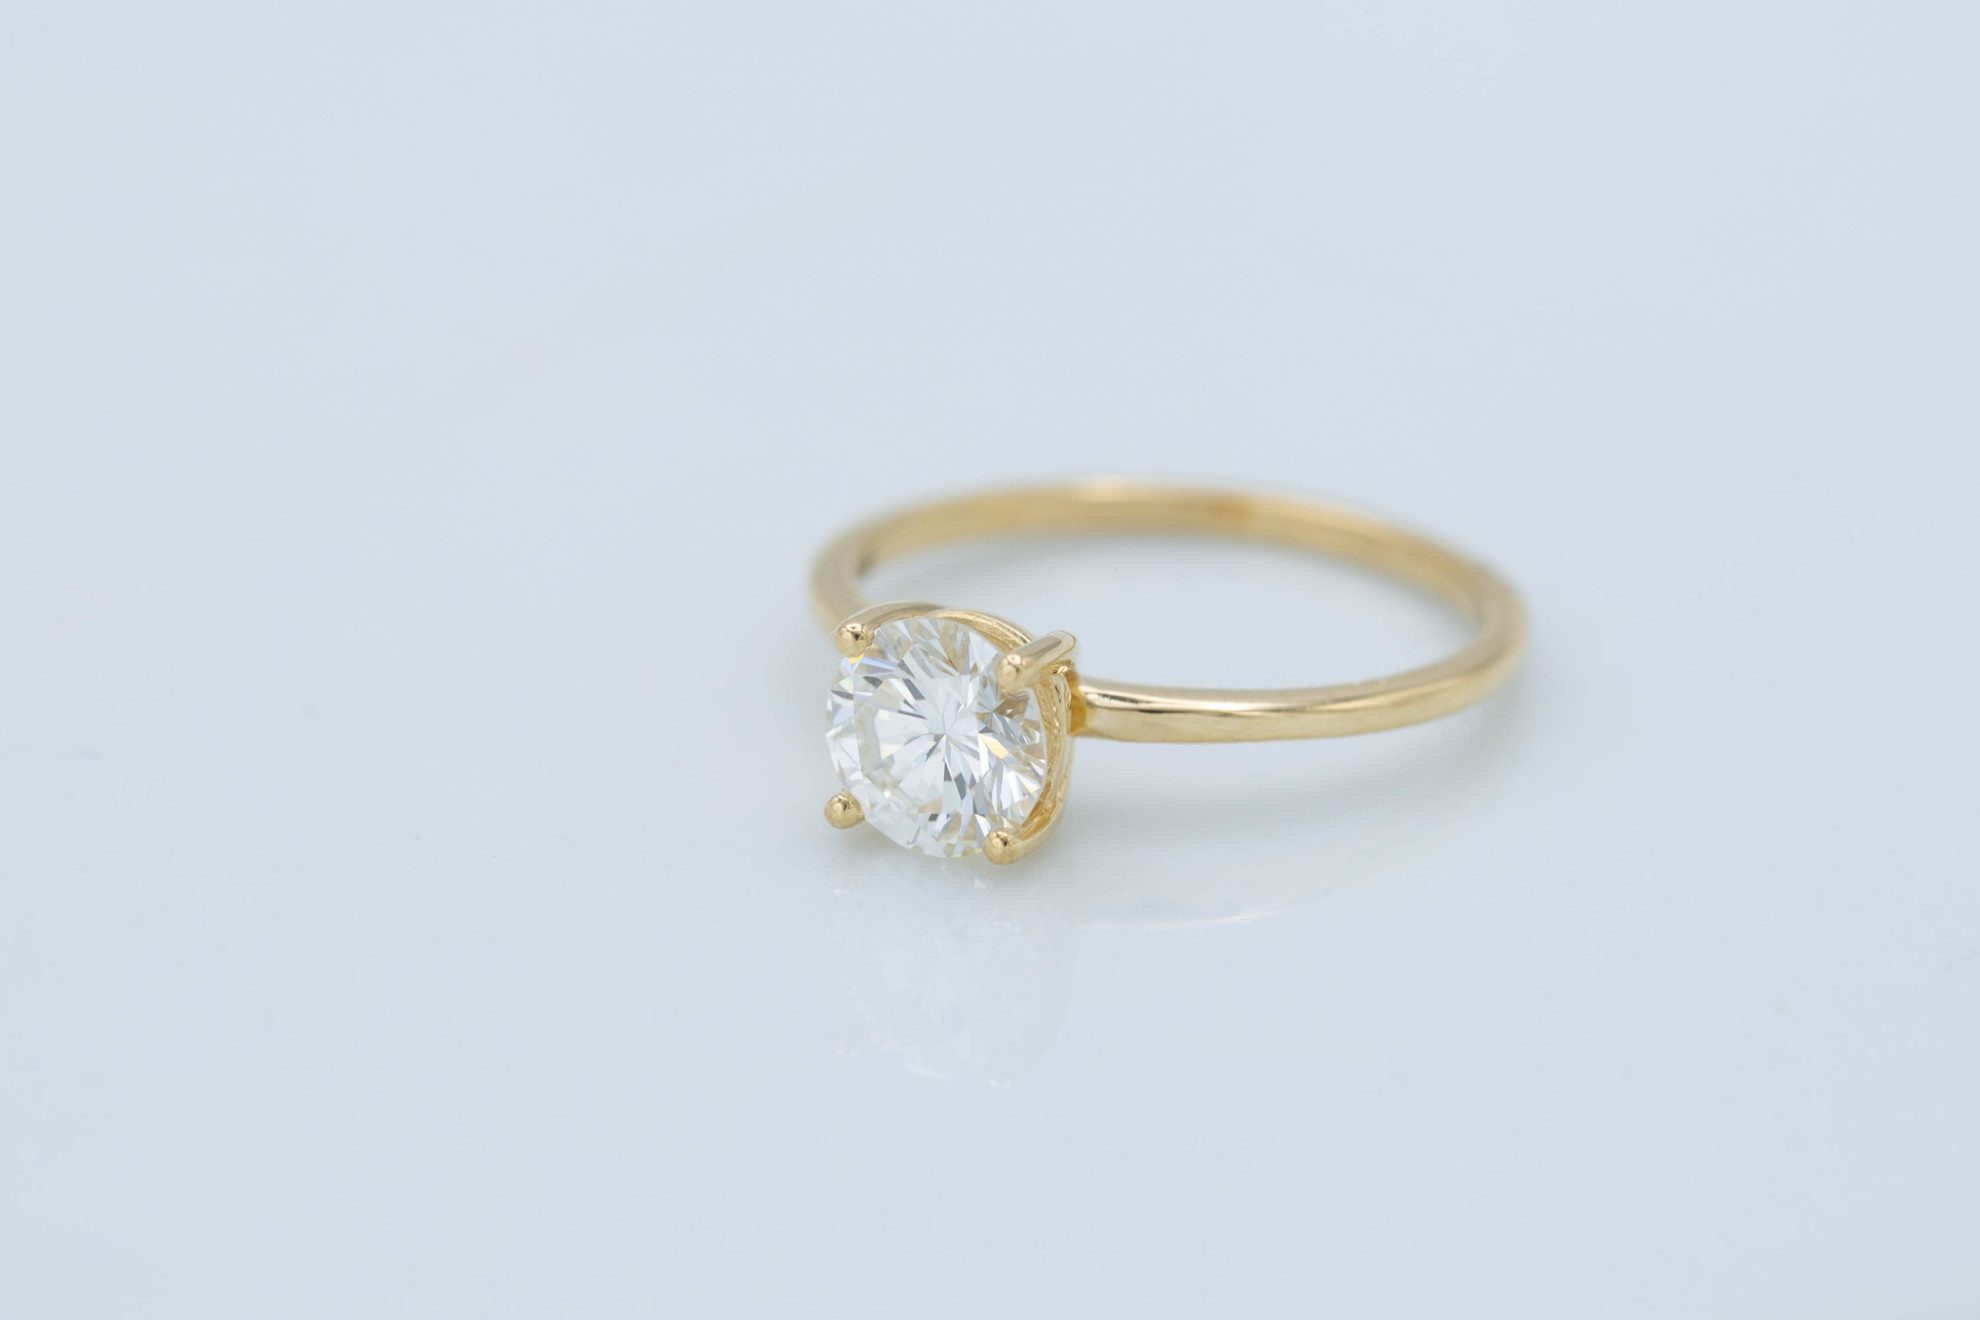 classic solitaire - engagement ring setting